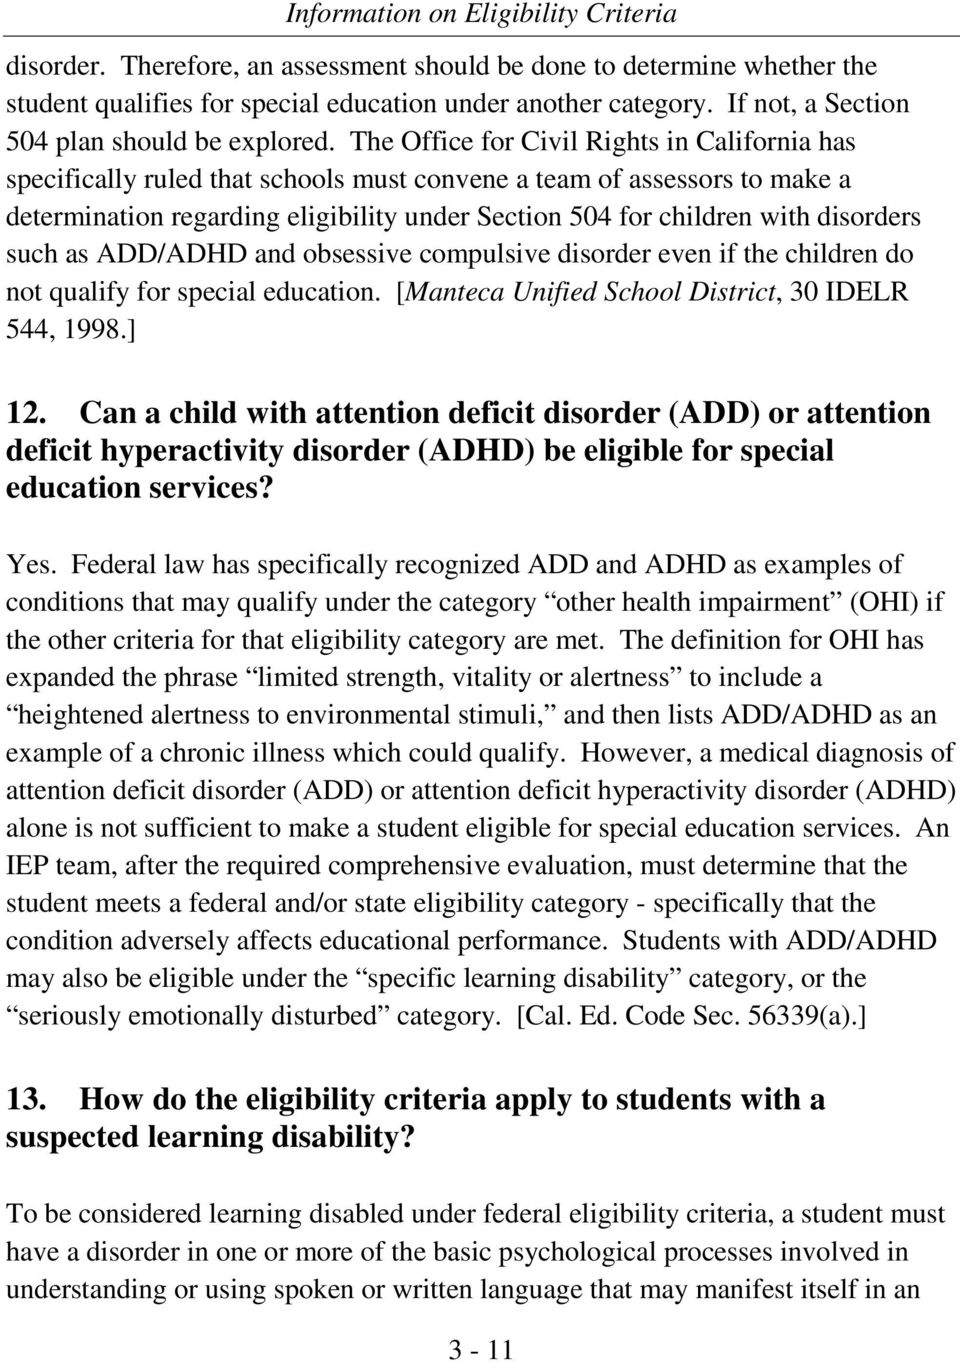 disorders such as ADD/ADHD and obsessive compulsive disorder even if the children do not qualify for special education. [Manteca Unified School District, 30 IDELR 544, 1998.] 12.